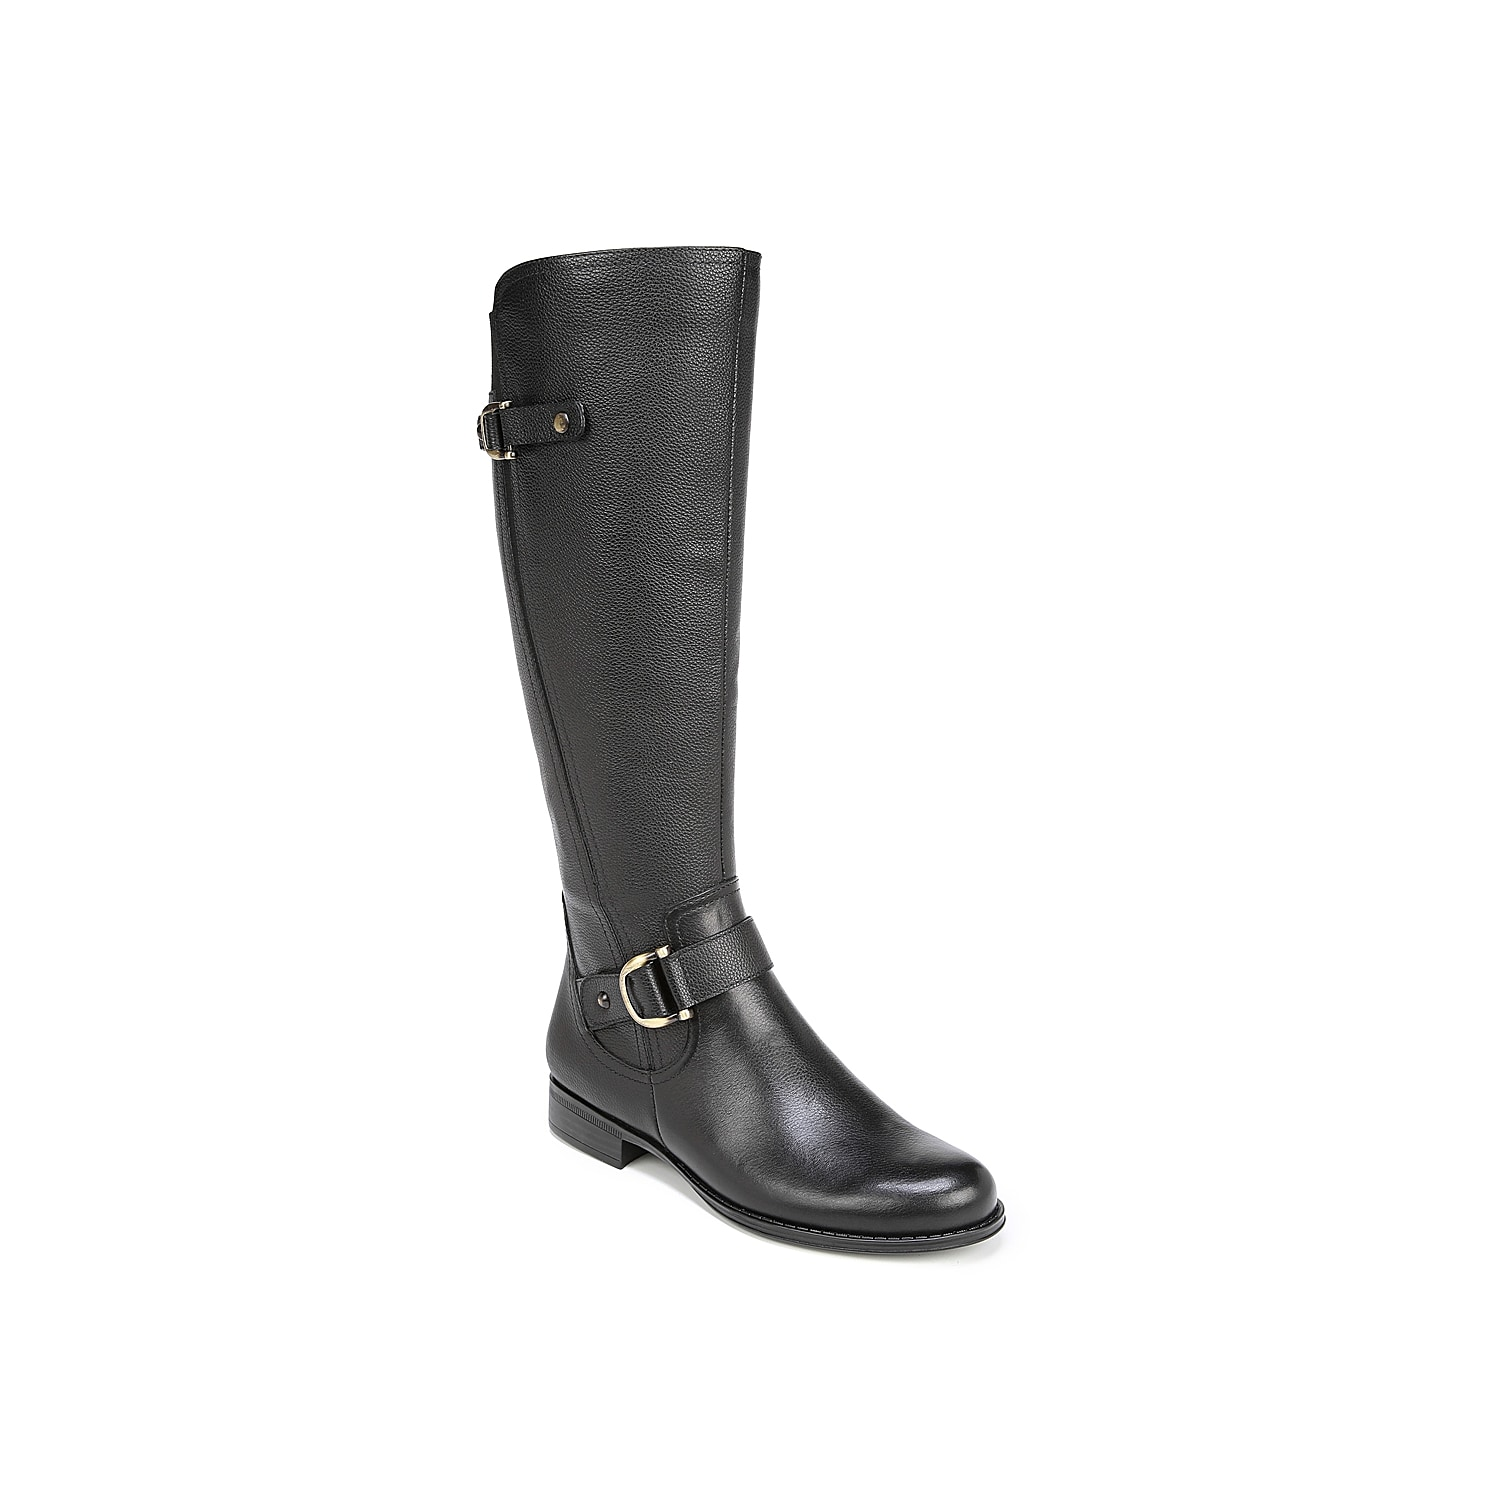 The Jillian riding boot from Naturalizer is a versatile tall pair that\\\'s styled with an asymmetric buckle across the vamp and extra polish on the toe. These knee high boots are ready to go with your favorite frayed jeans and a cozy flannel. Click here for Boot Measuring Guide.